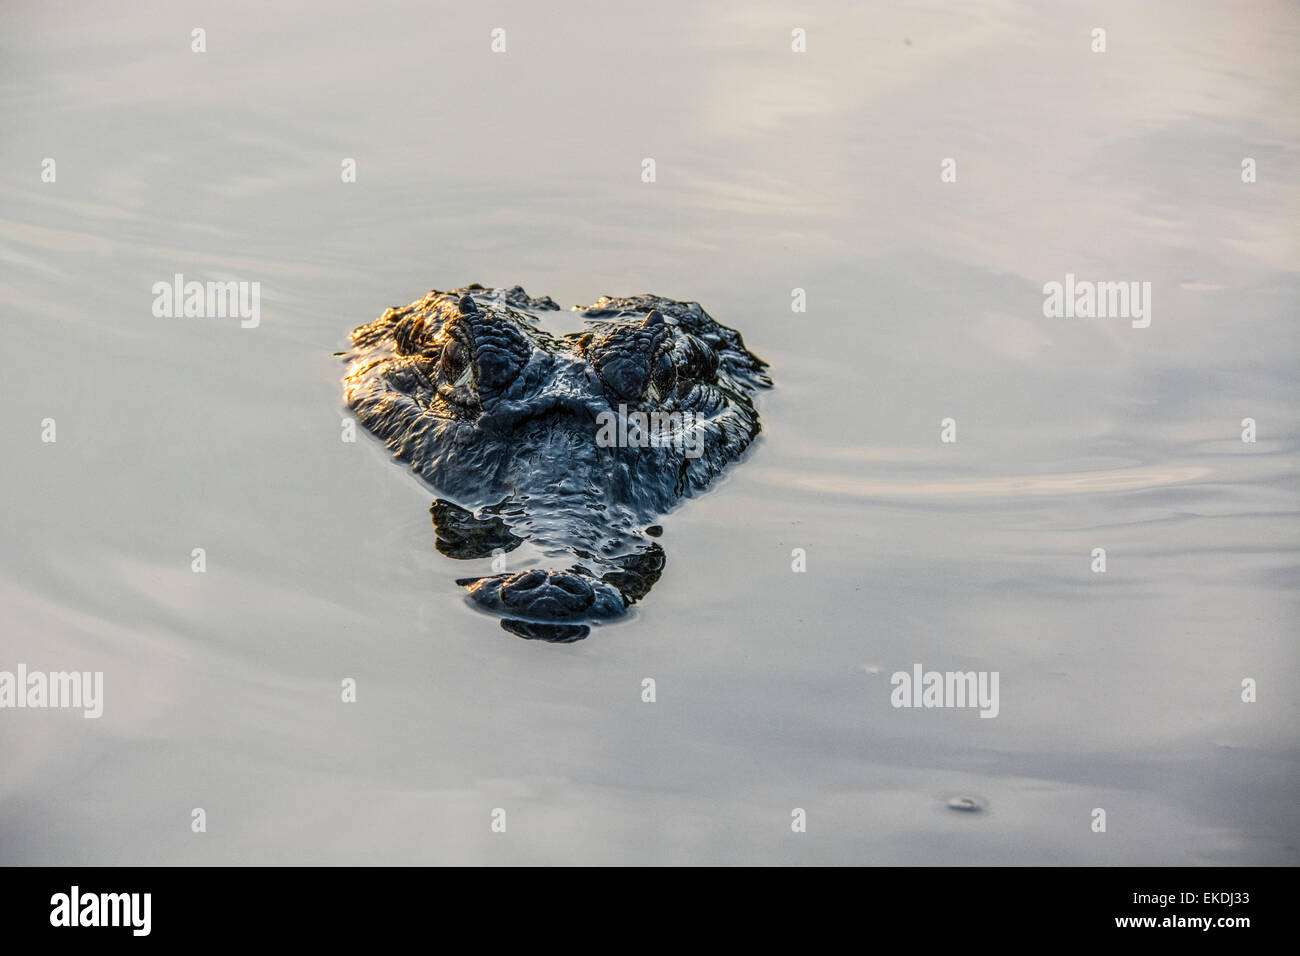 Sinister head of a Yacare Caiman, Caiman crocodilus yacare, in a river in the Pantanal, Mato Grosso, Brazil, South - Stock Image